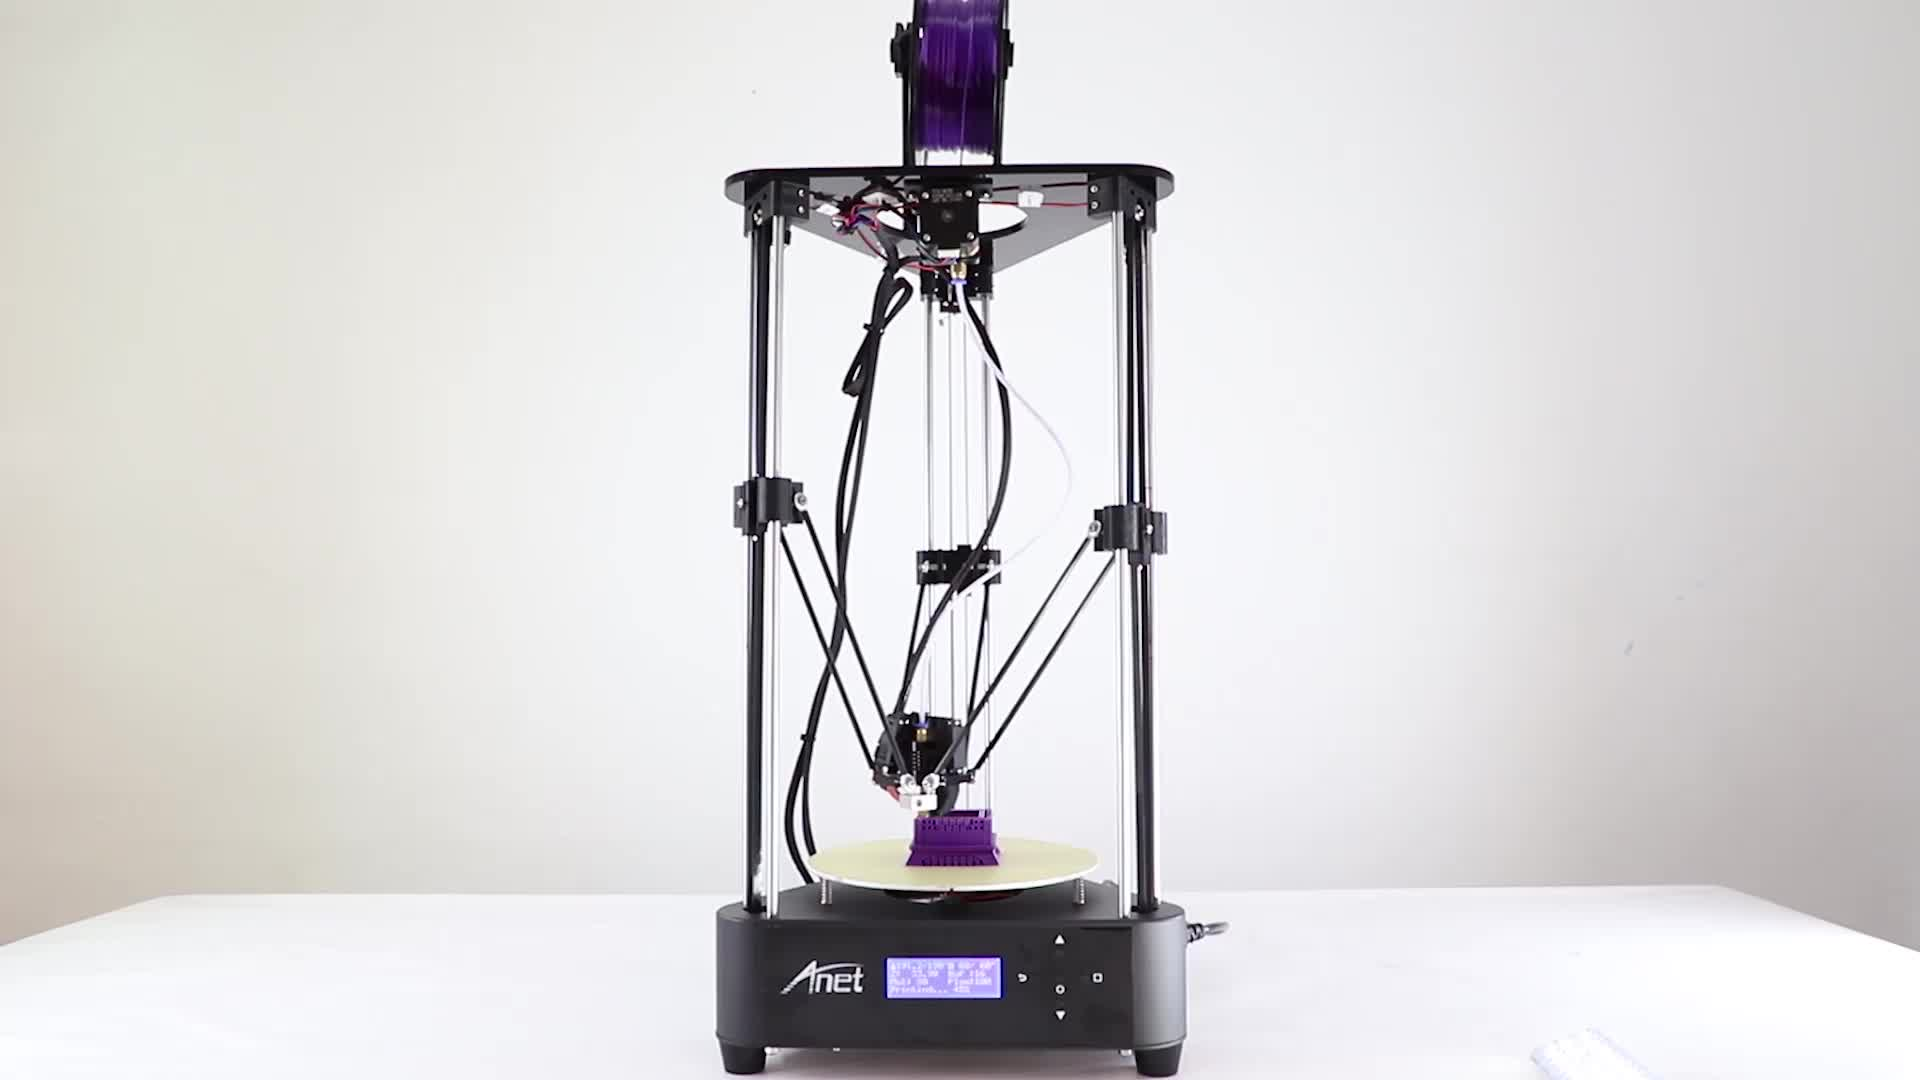 New Design anet a4 high accuracy desktop metal frame 3d printer for education